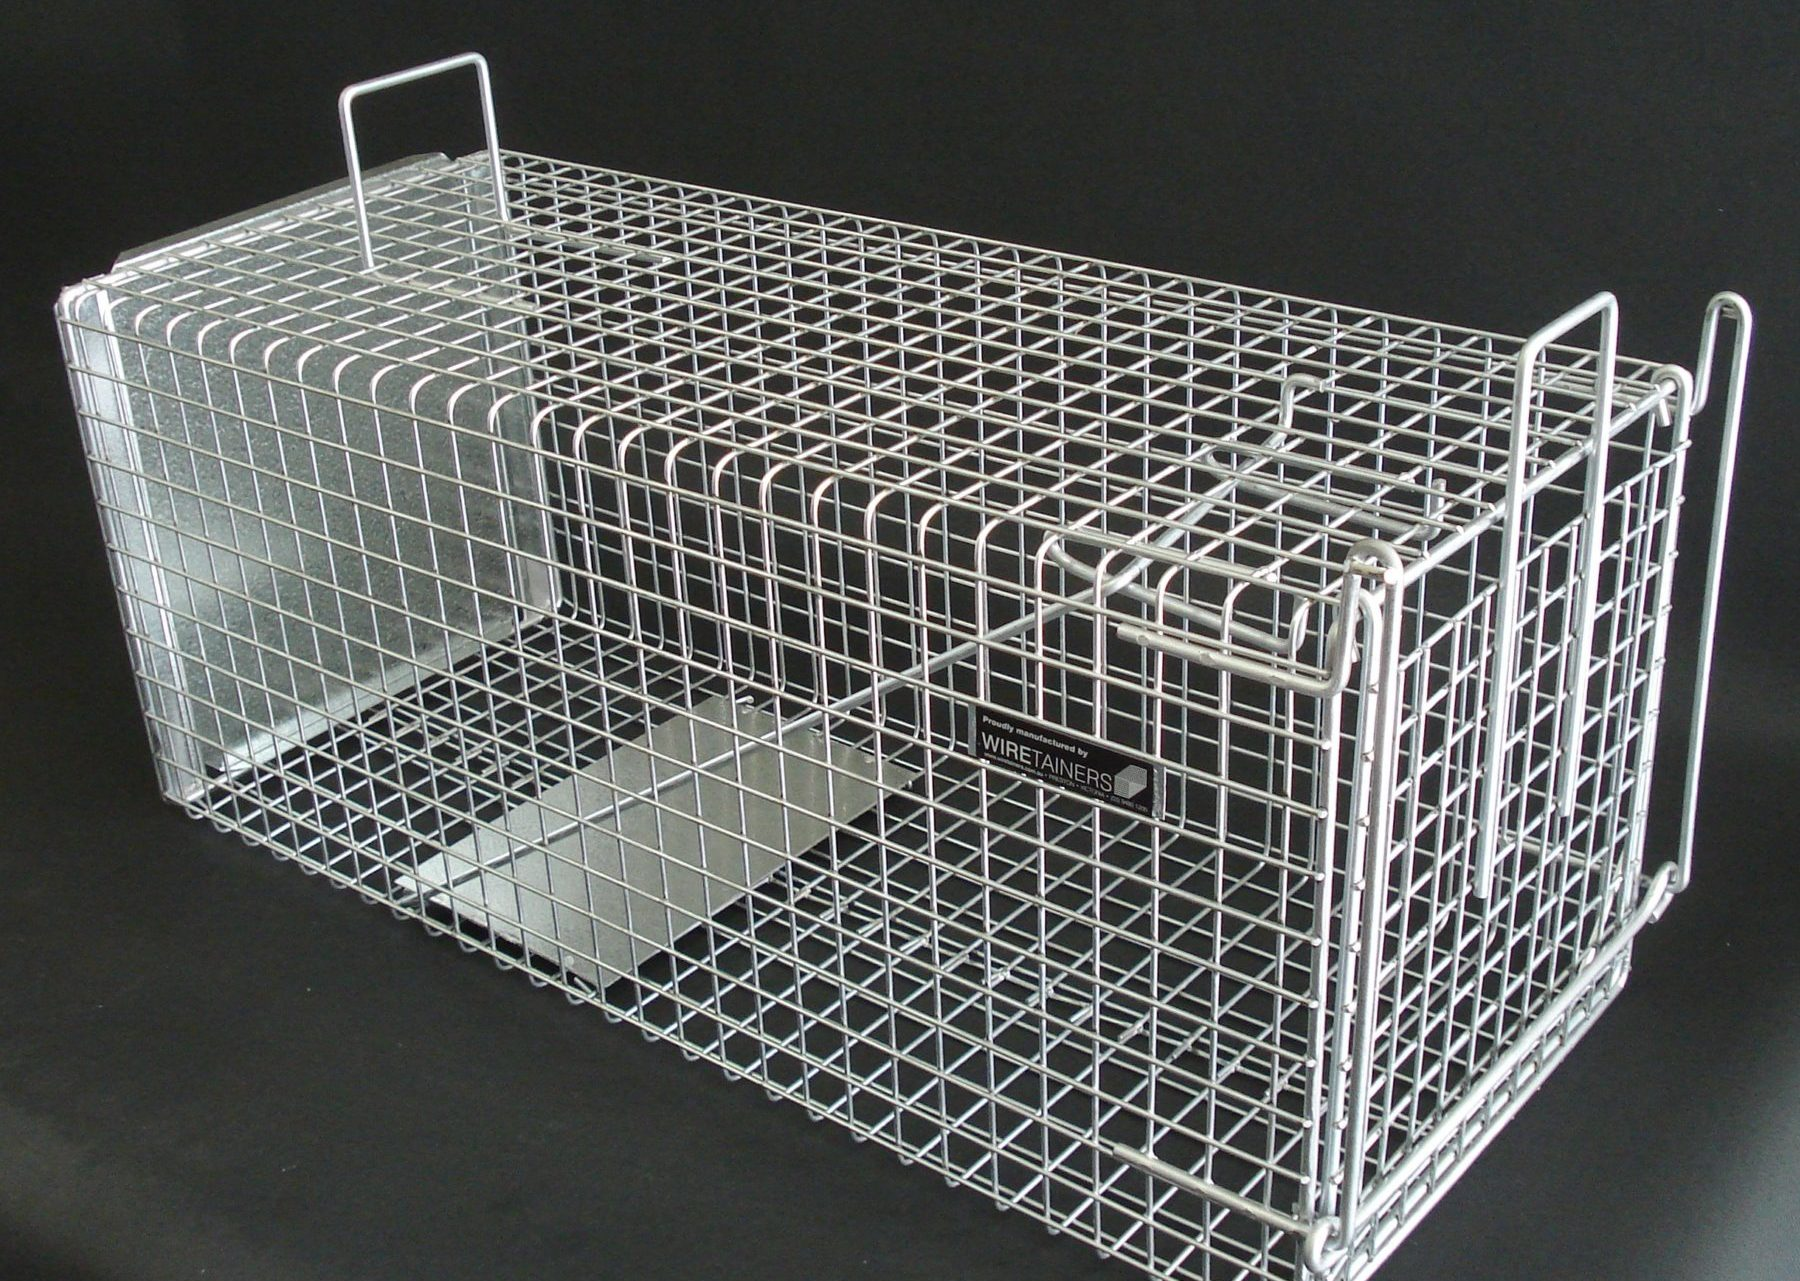 Detail image of Wiretainers Cat Trap or Rabbit Trapfrom Automatic Wire